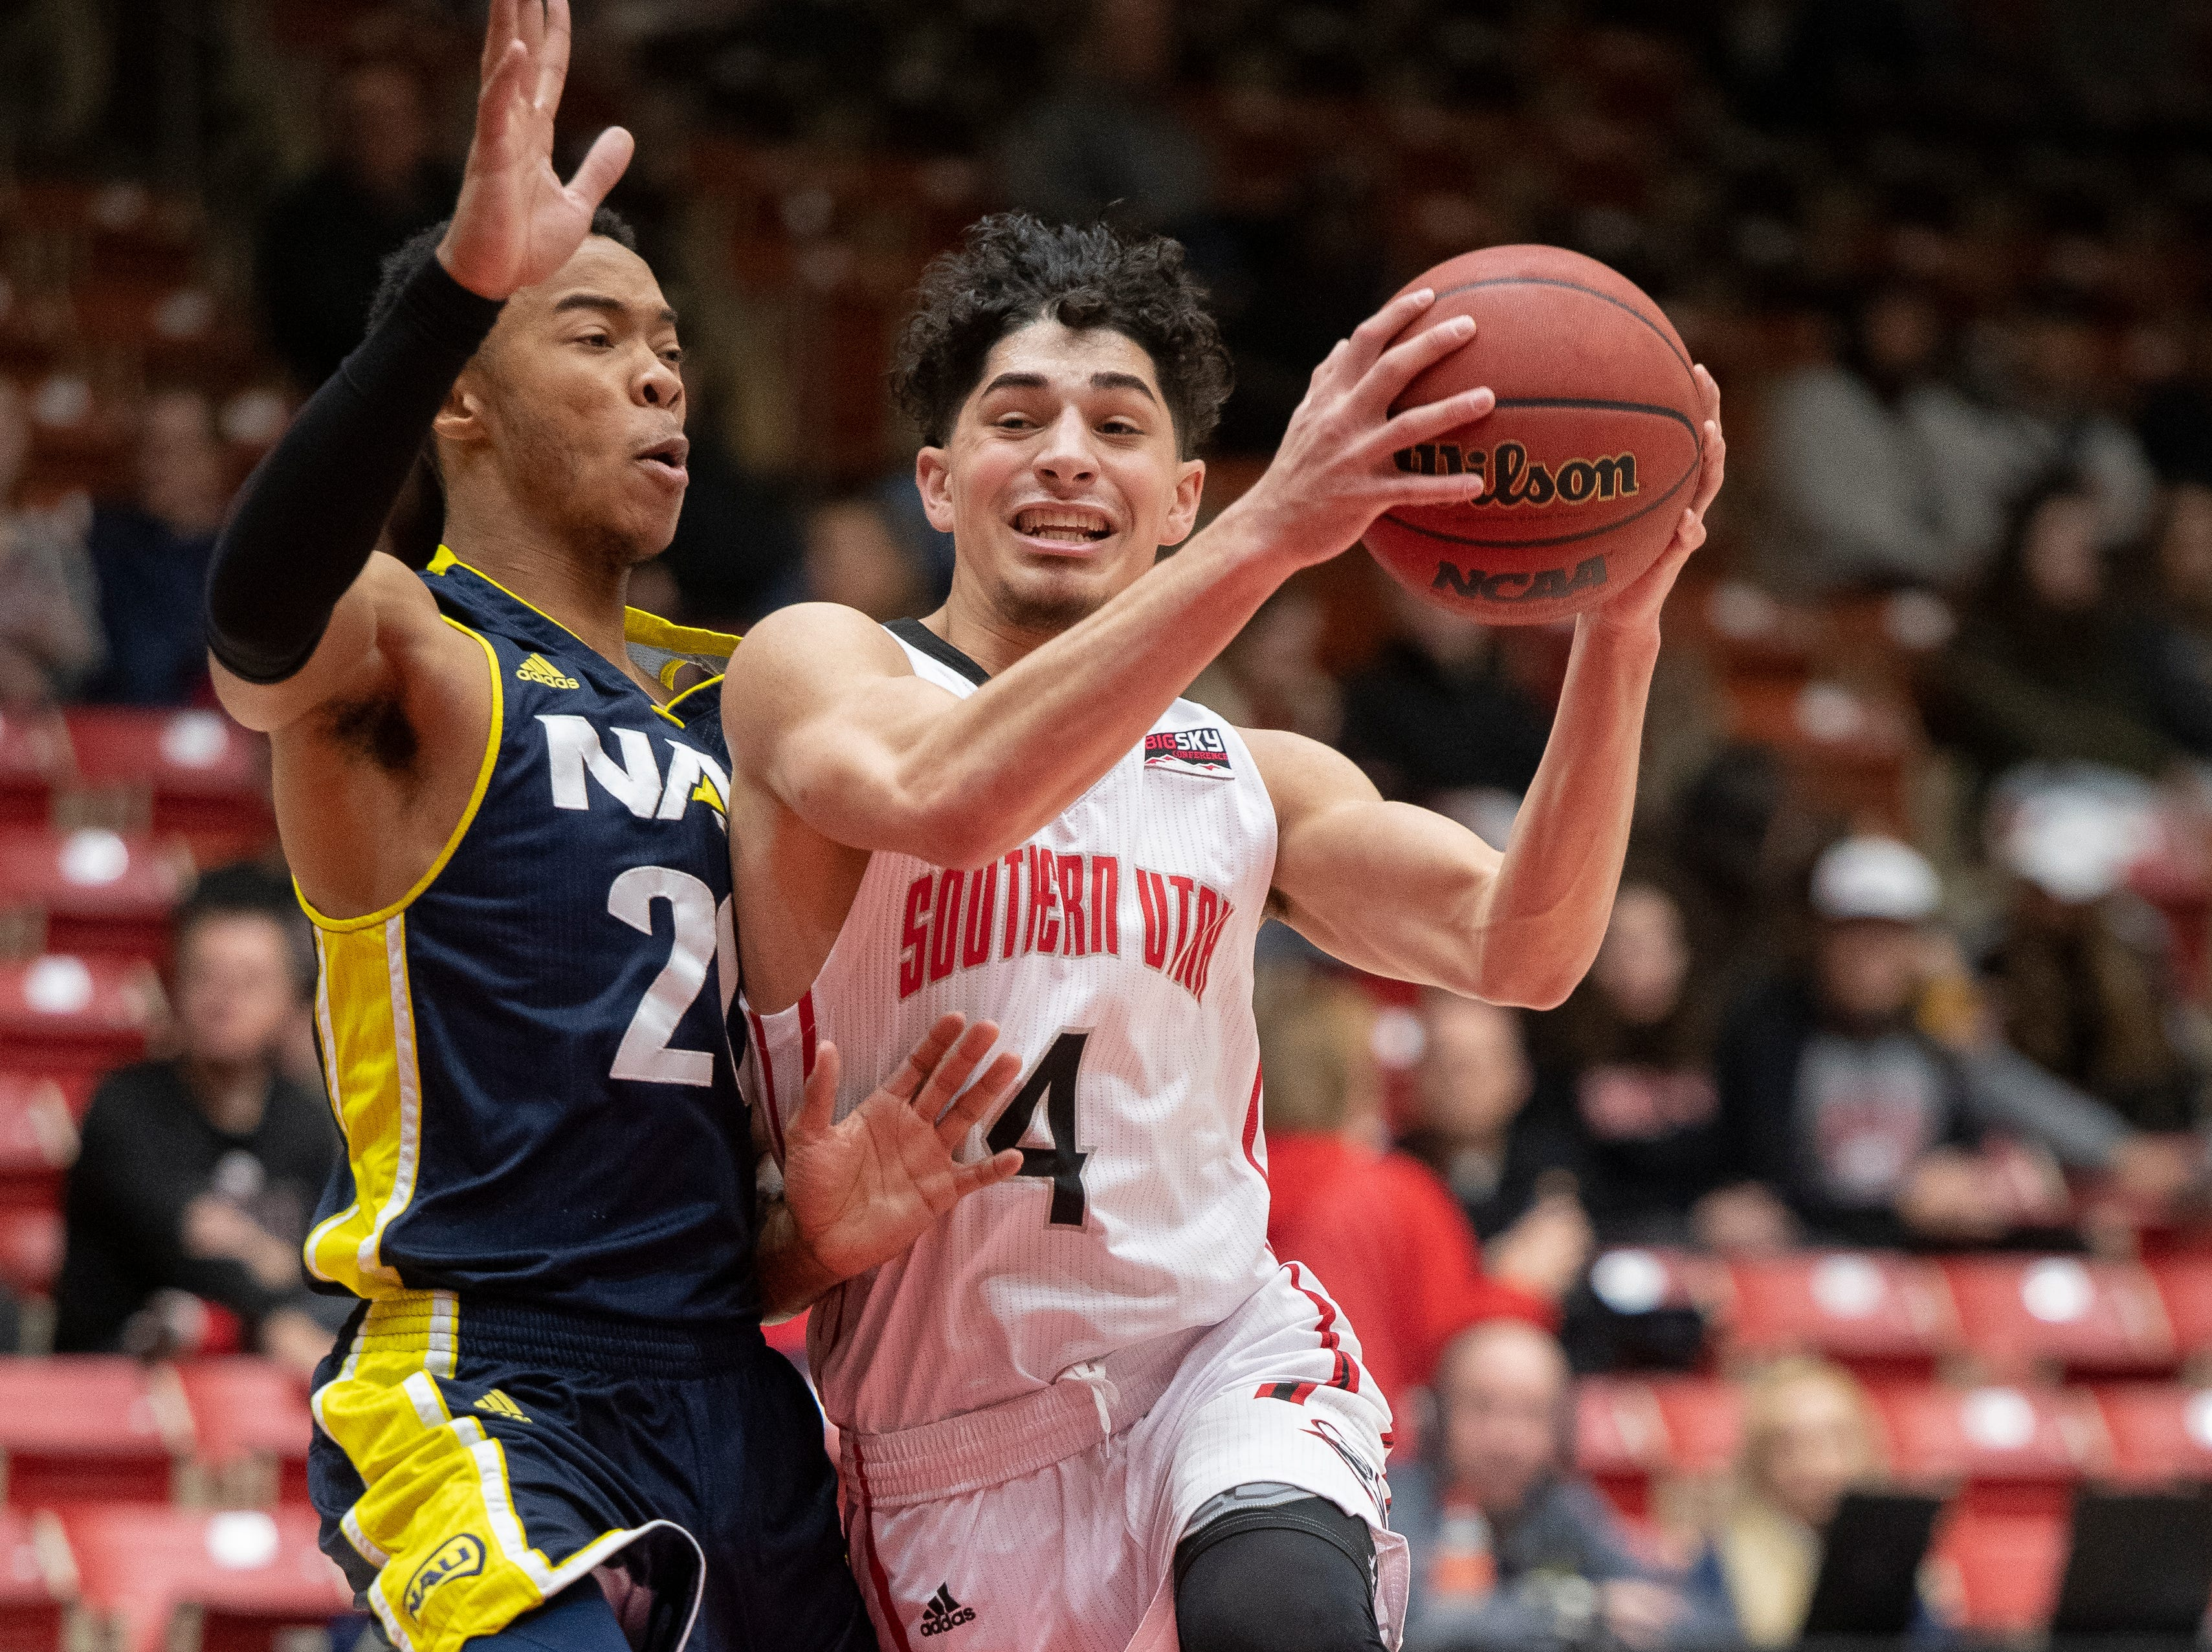 Southern Utah University sophomore Dre Marin (4) moves the ball against rival Northern Arizona at the America First Event Center Saturday, January 12, 2019. SUU won, 84-82.